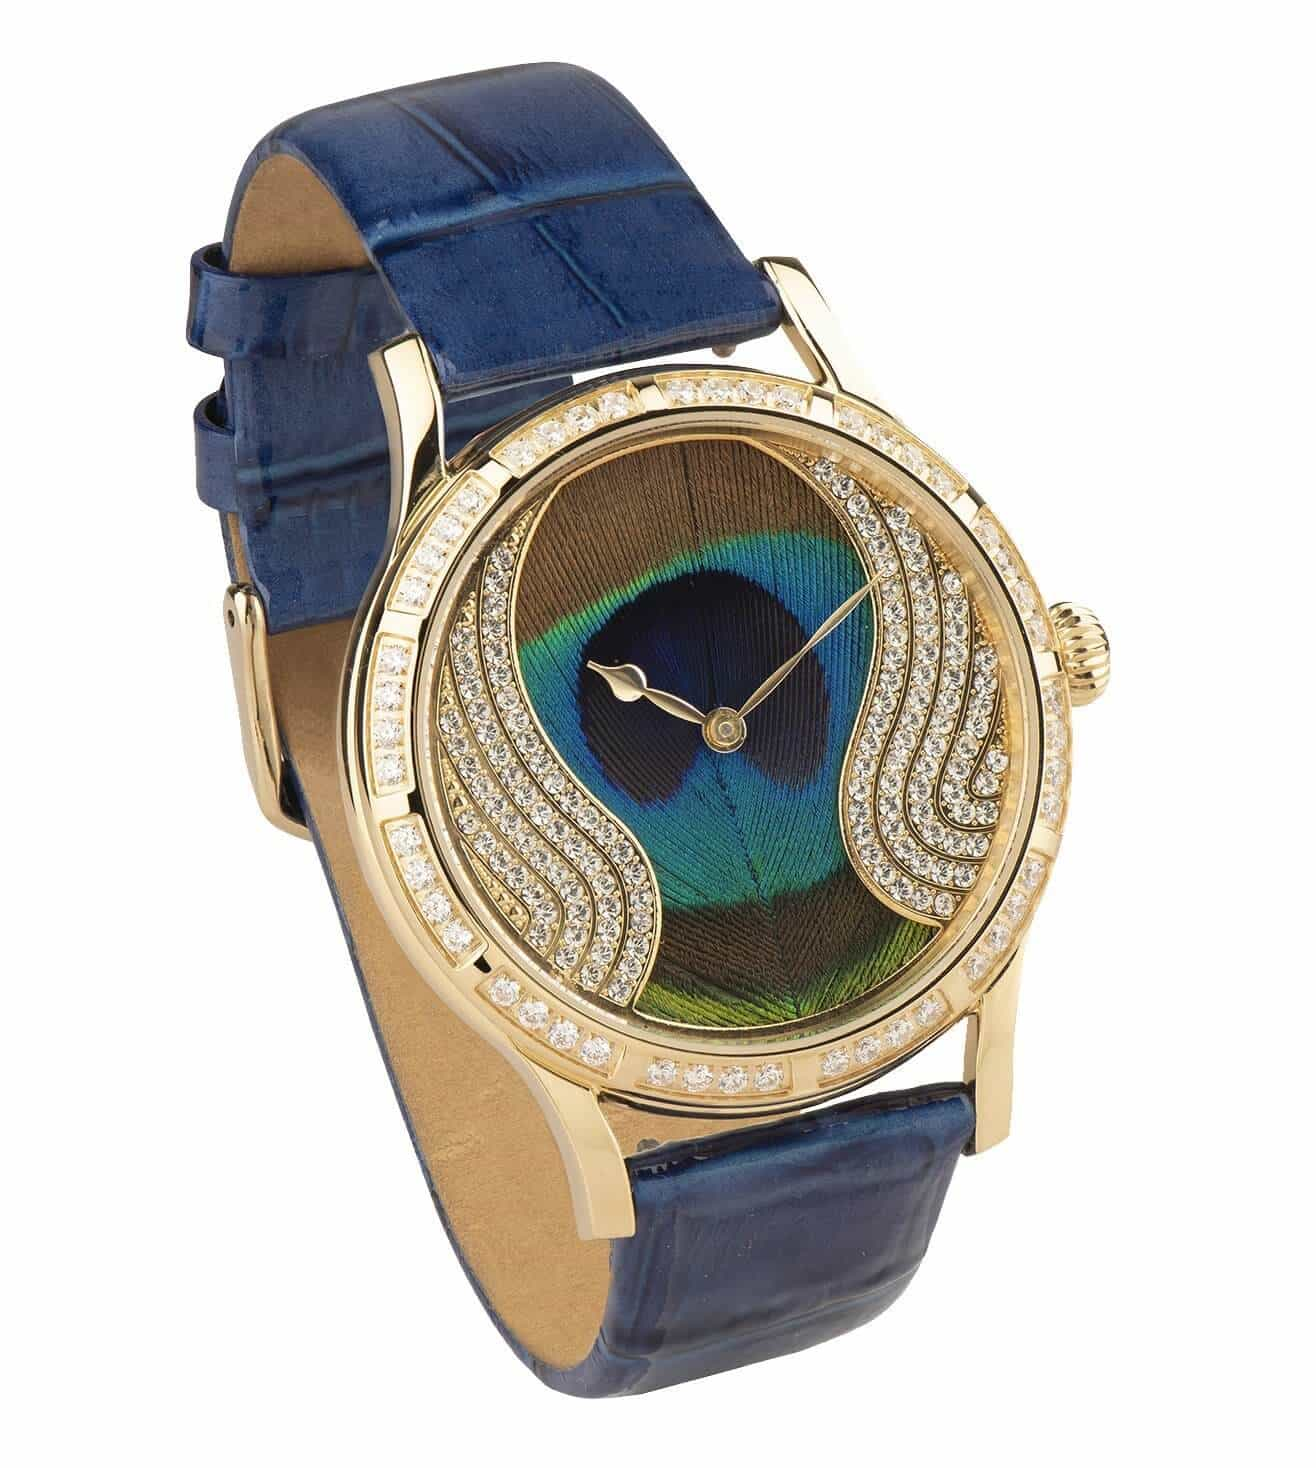 Jaipur watch peacock feature wrist watch